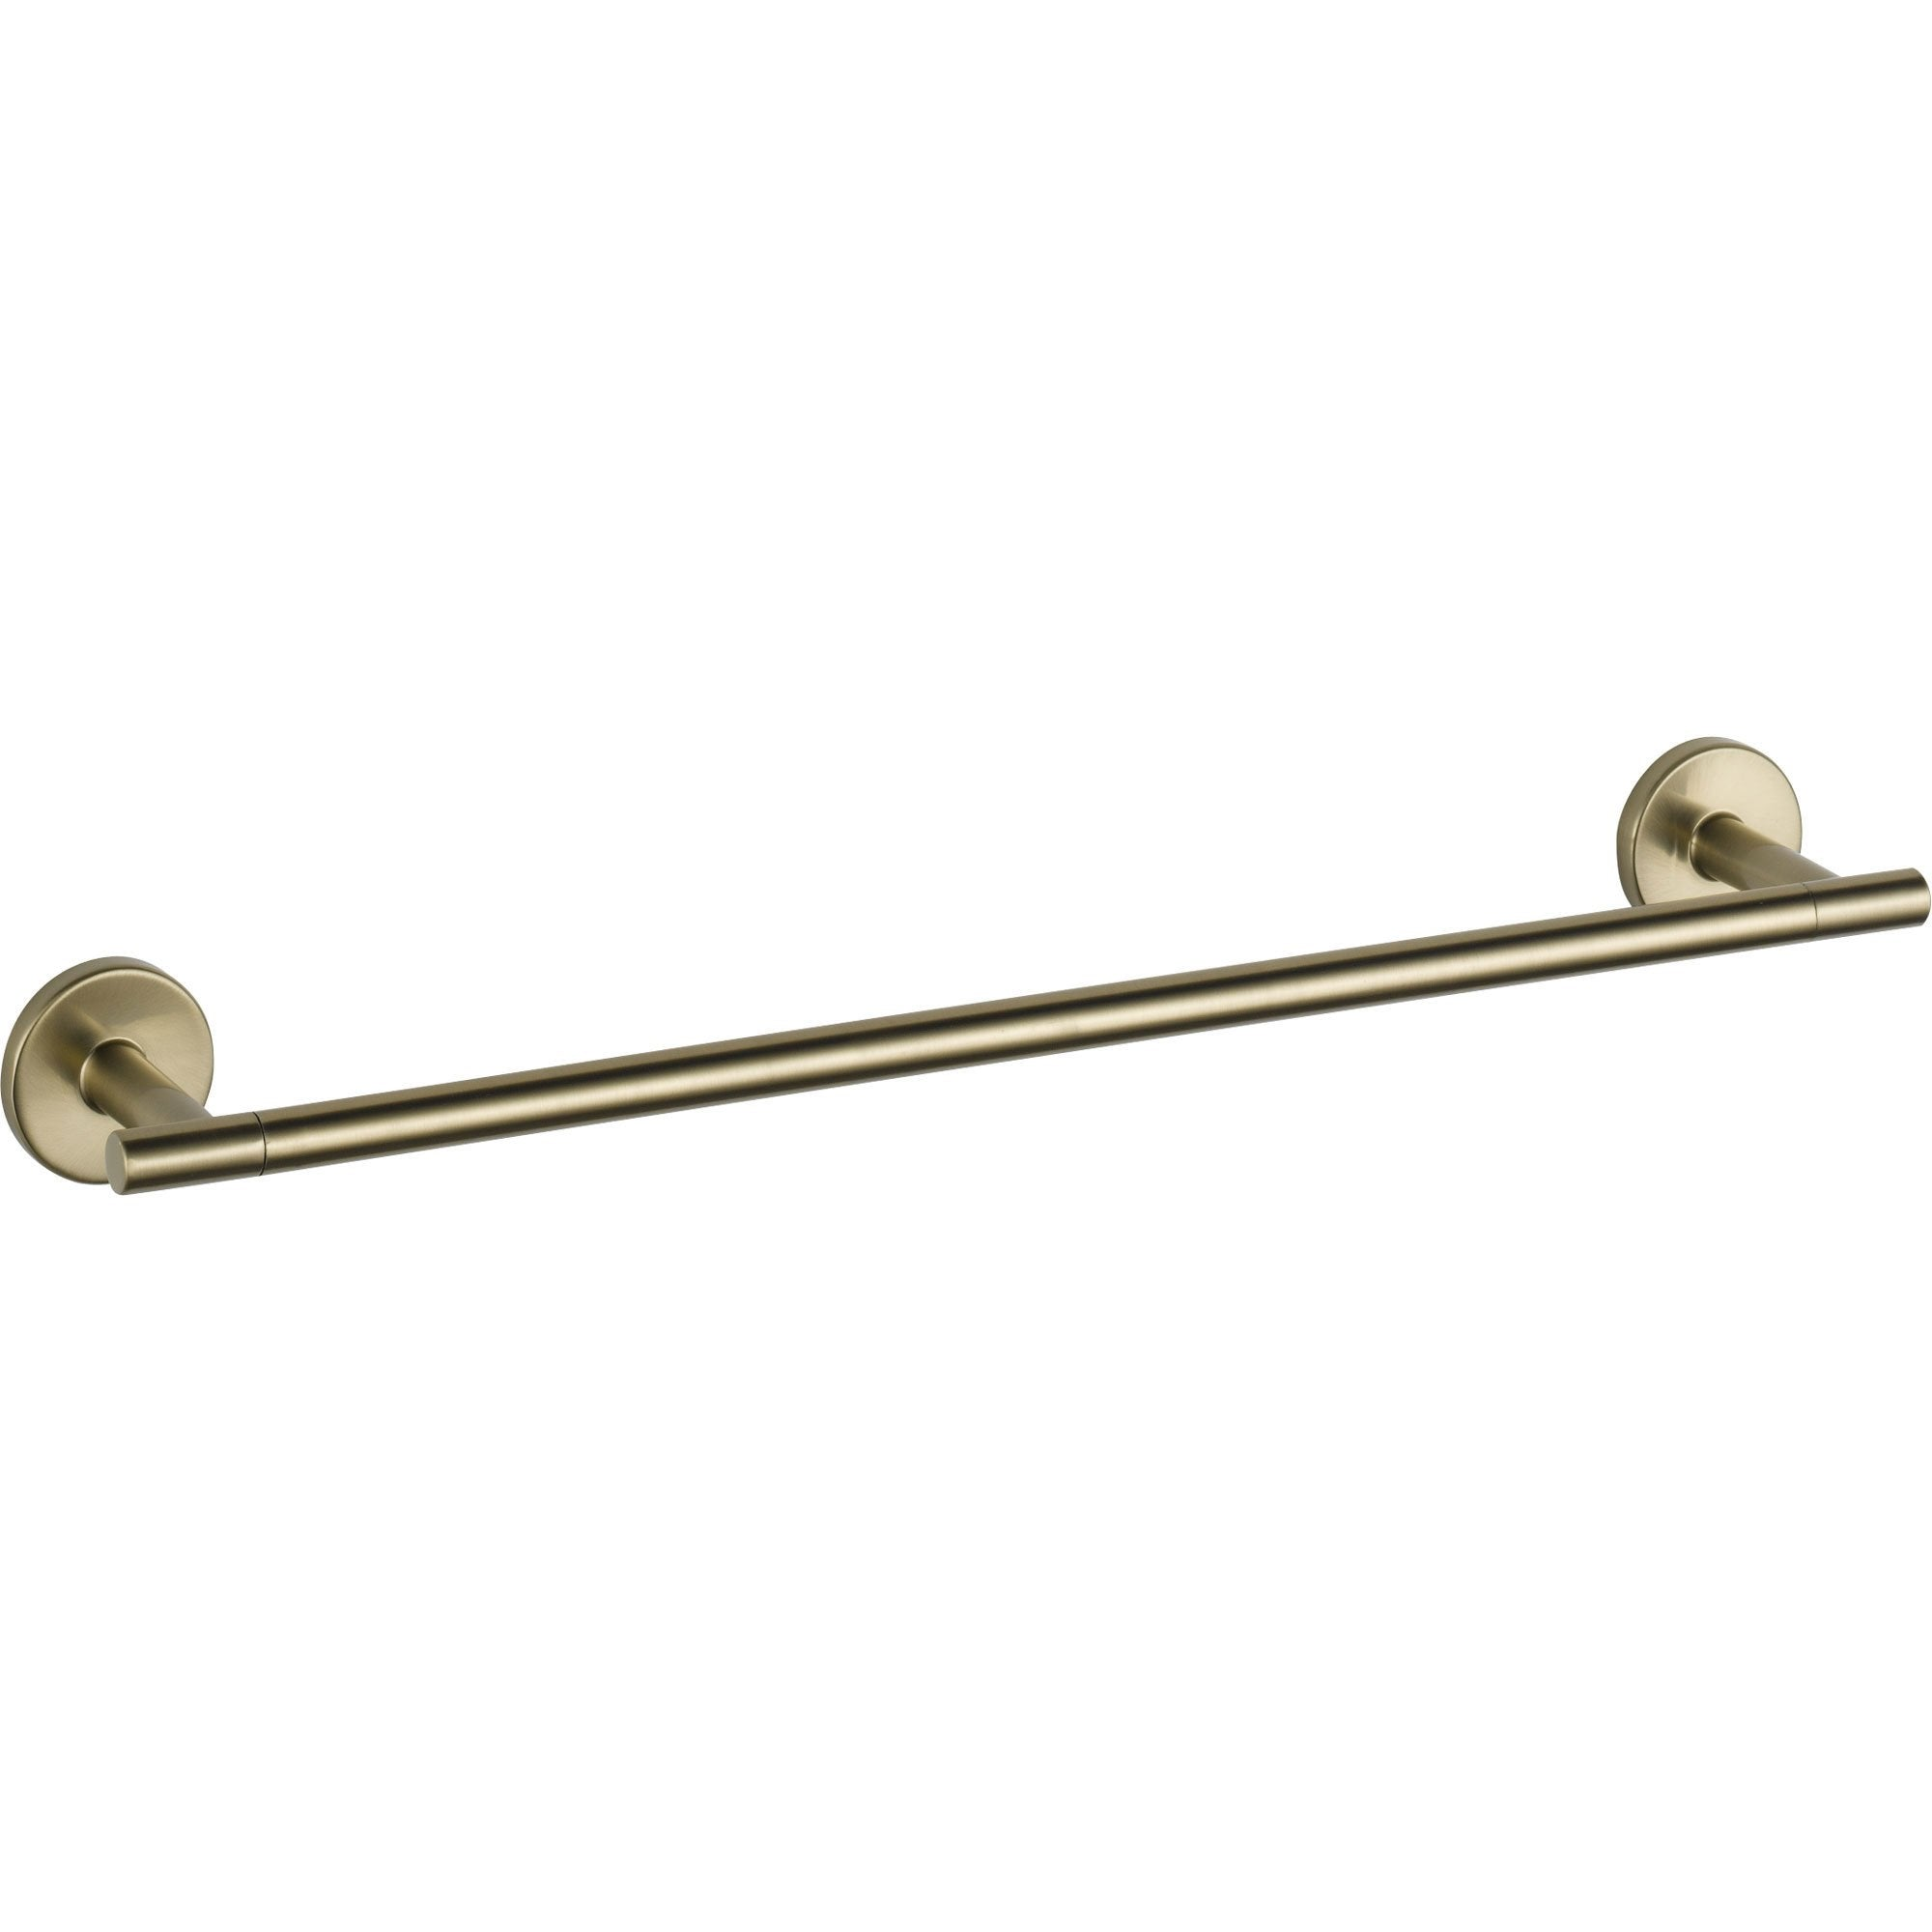 Delta Trinsic Modern 18 Inch Venetian Bronze Single Towel Bar 590175